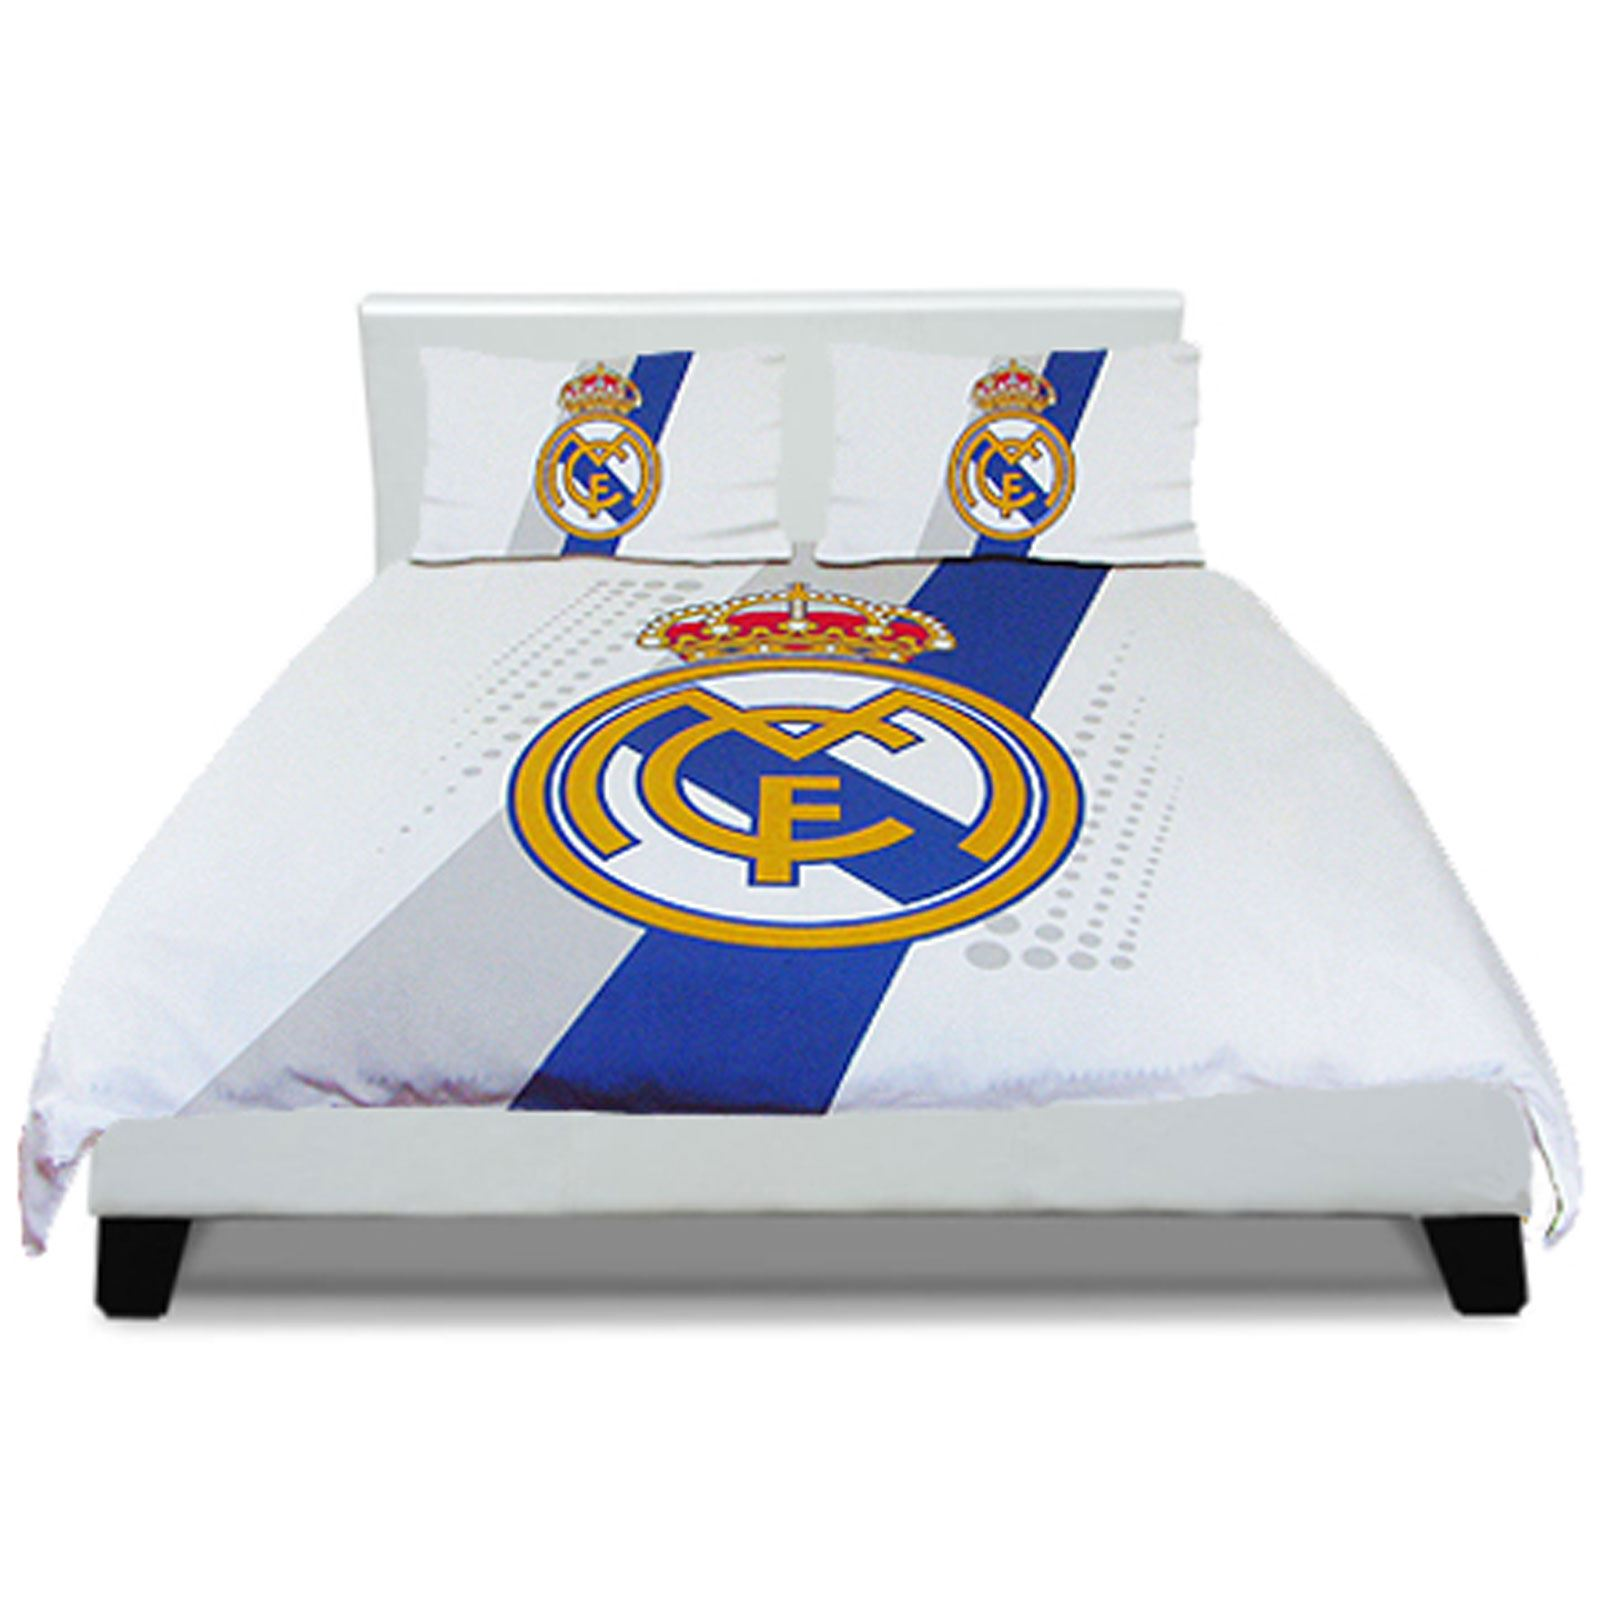 Single and double fc duvet cover bedding sets official for Housse de couette de foot